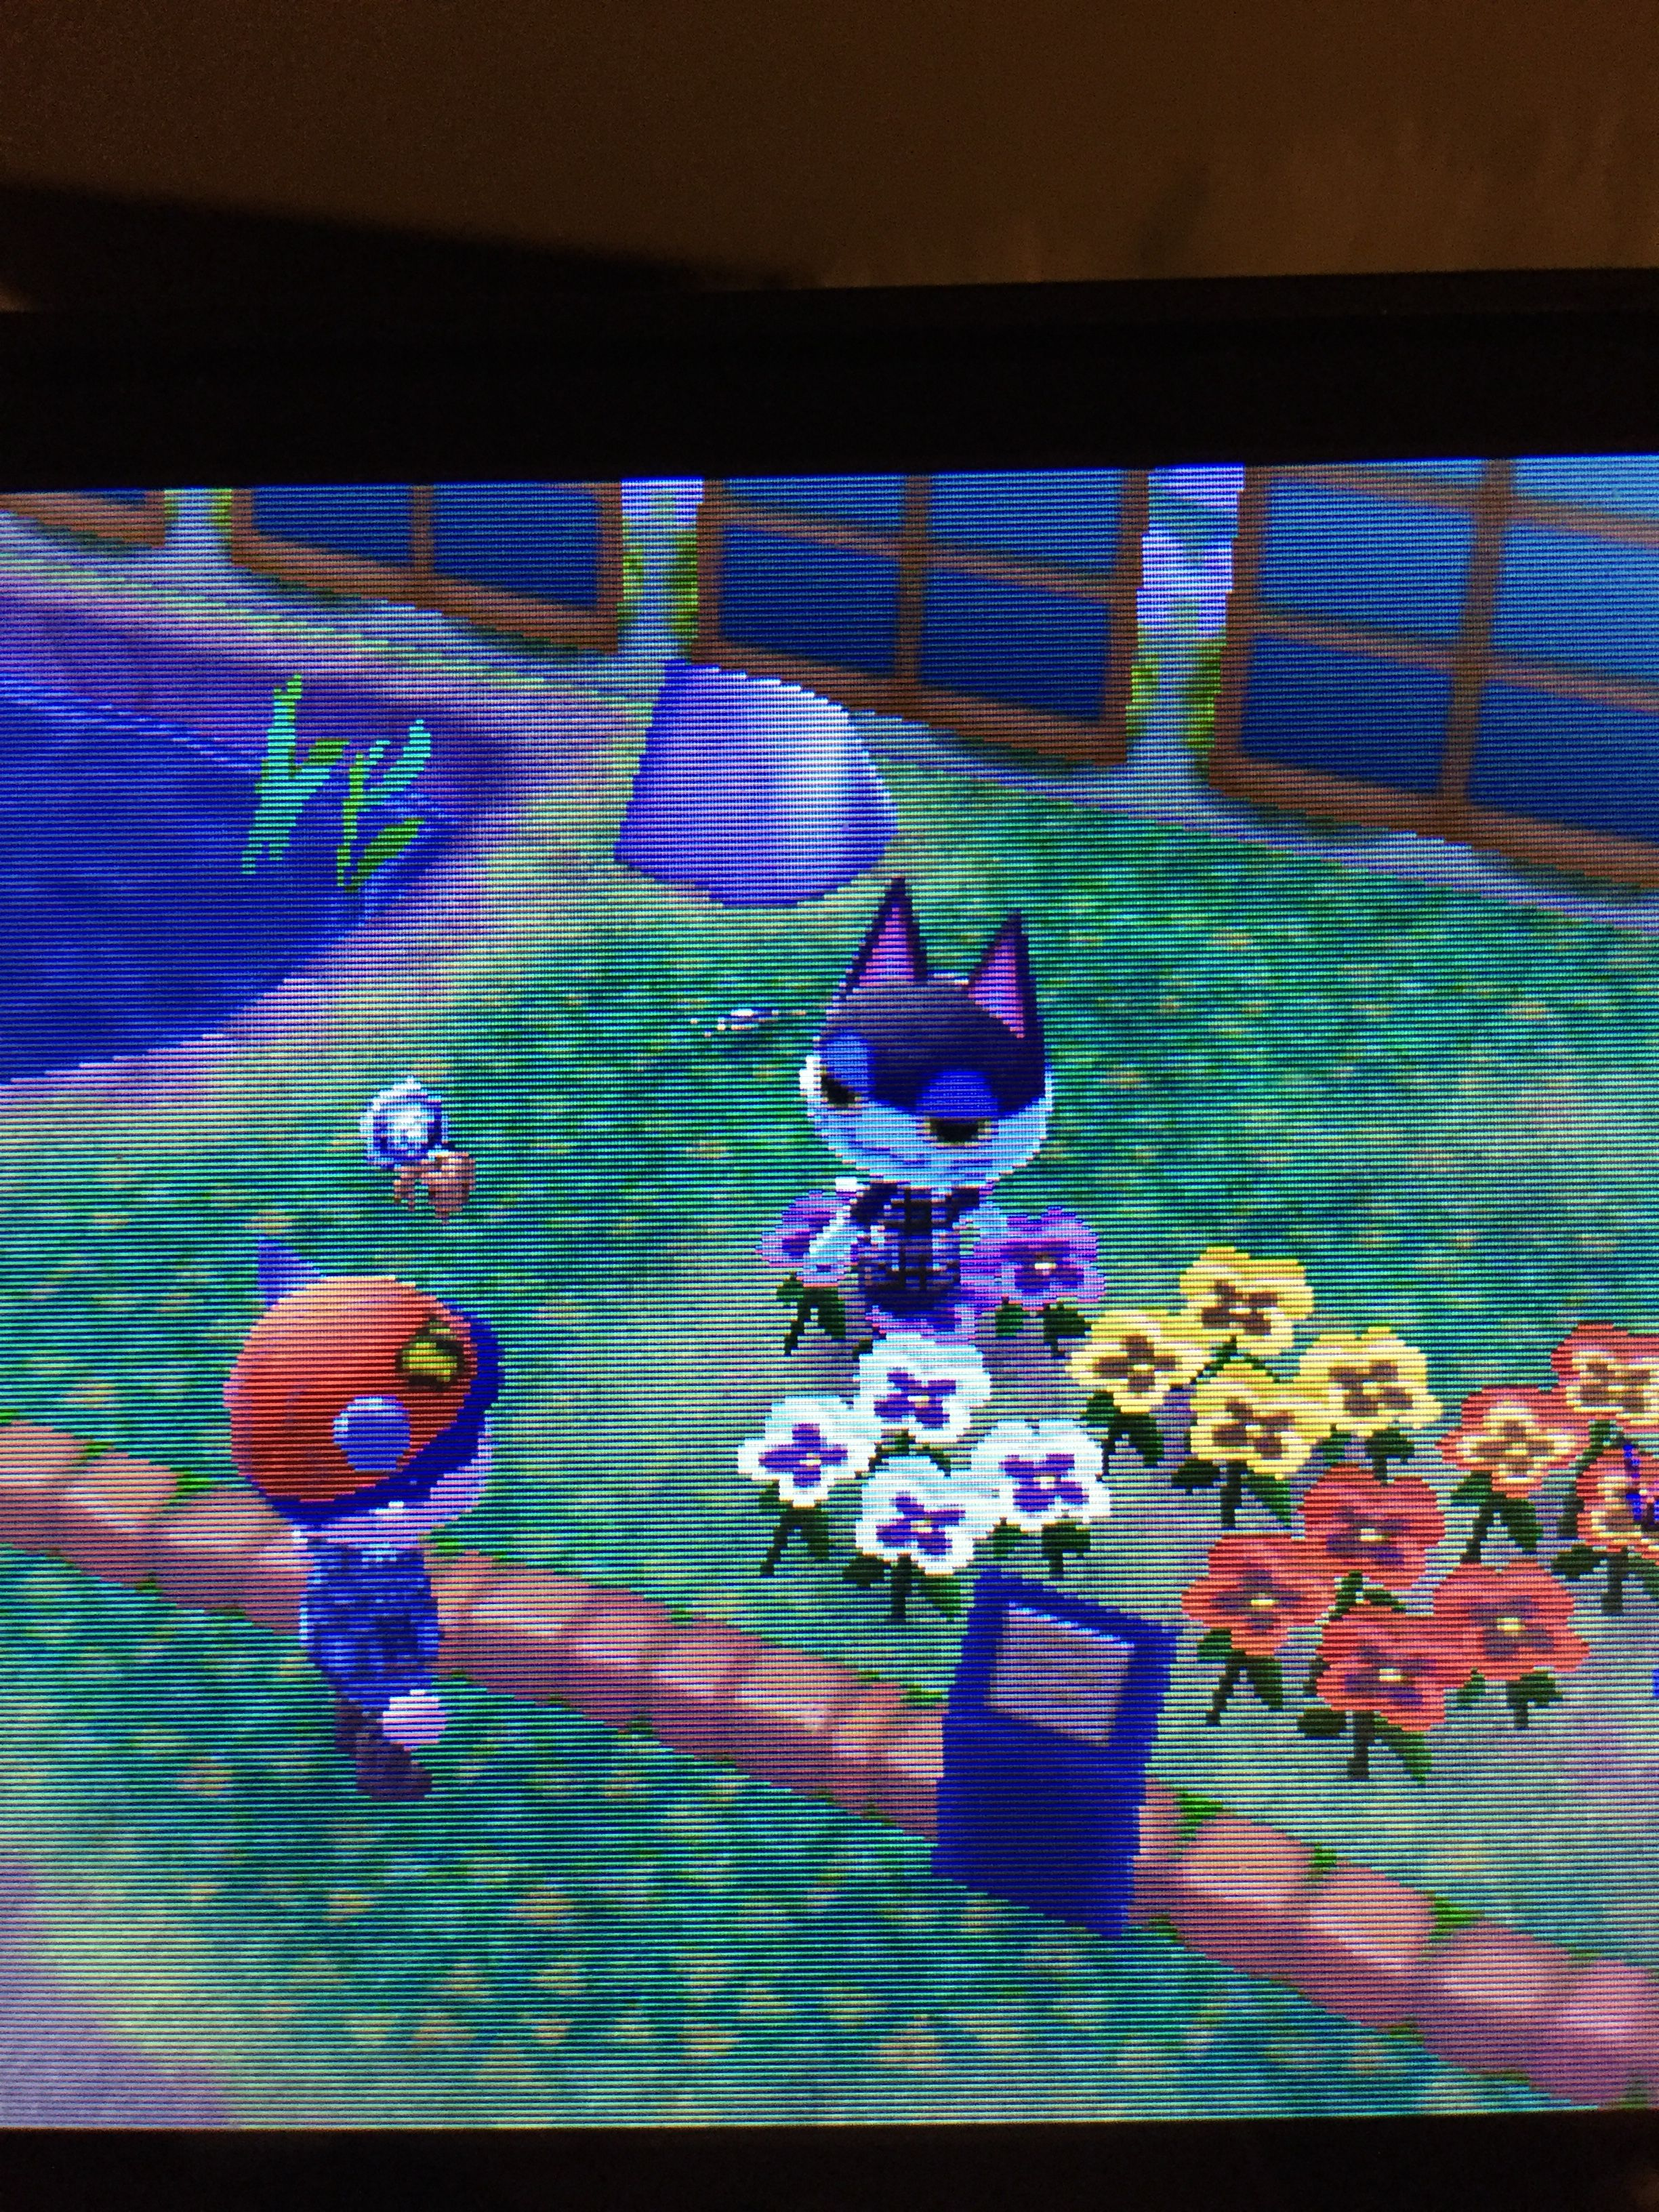 16+ How to add a friend on animal crossing ideas